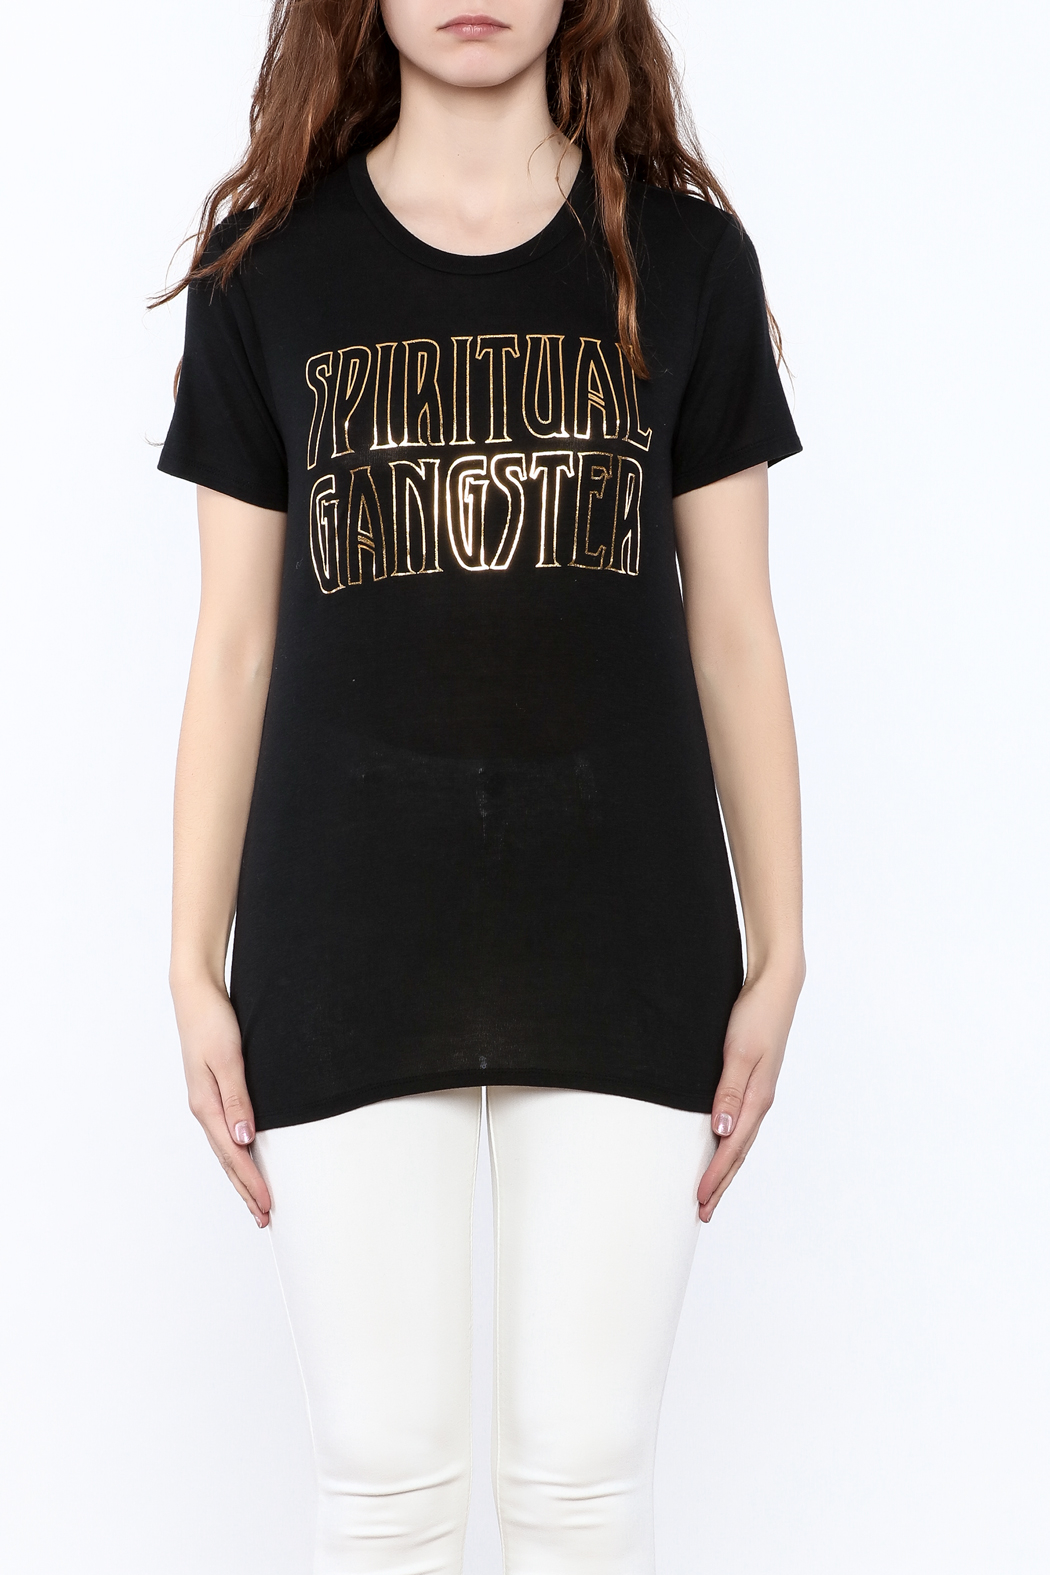 SPIRITUAL GANGSTER Black Graphic Tee - Side Cropped Image